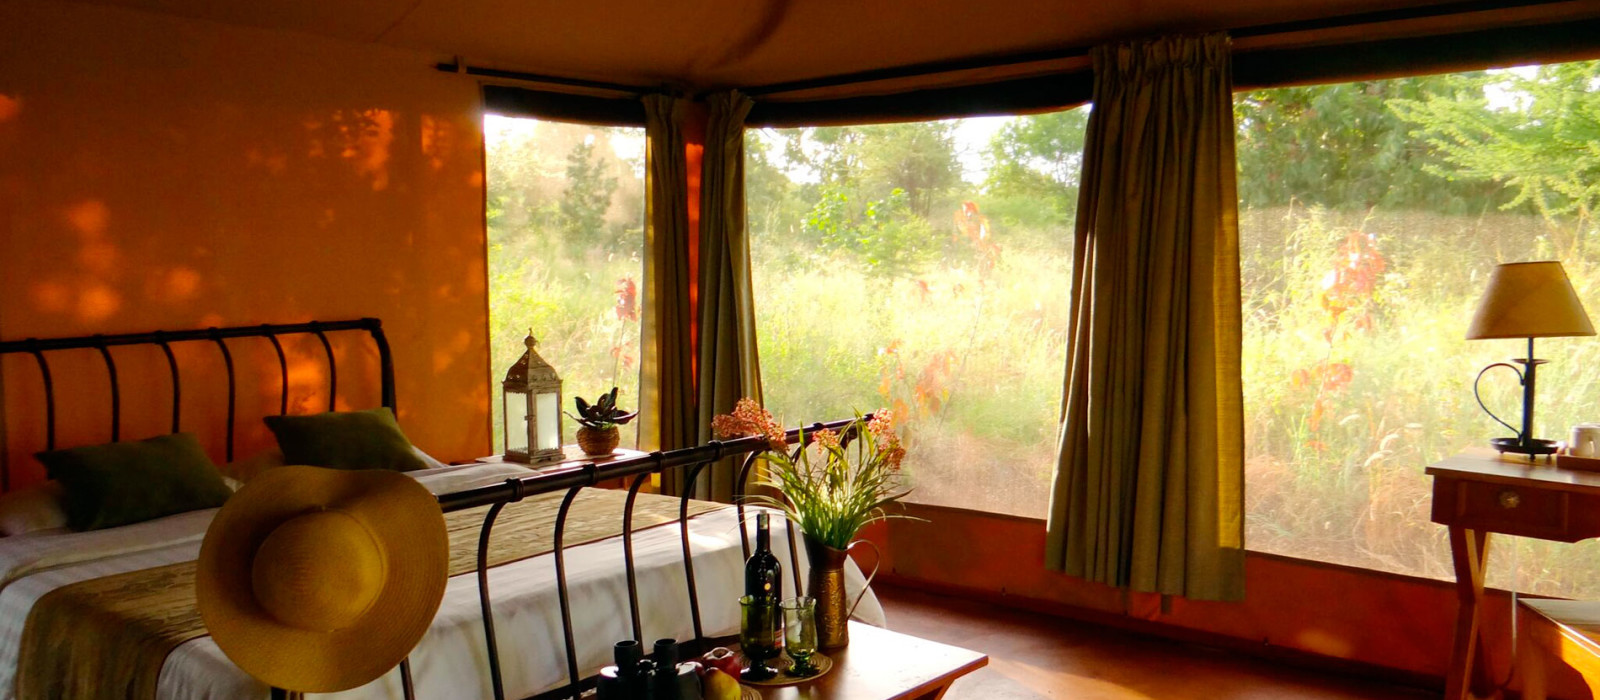 Hotel iKweta Safari Camp Kenia